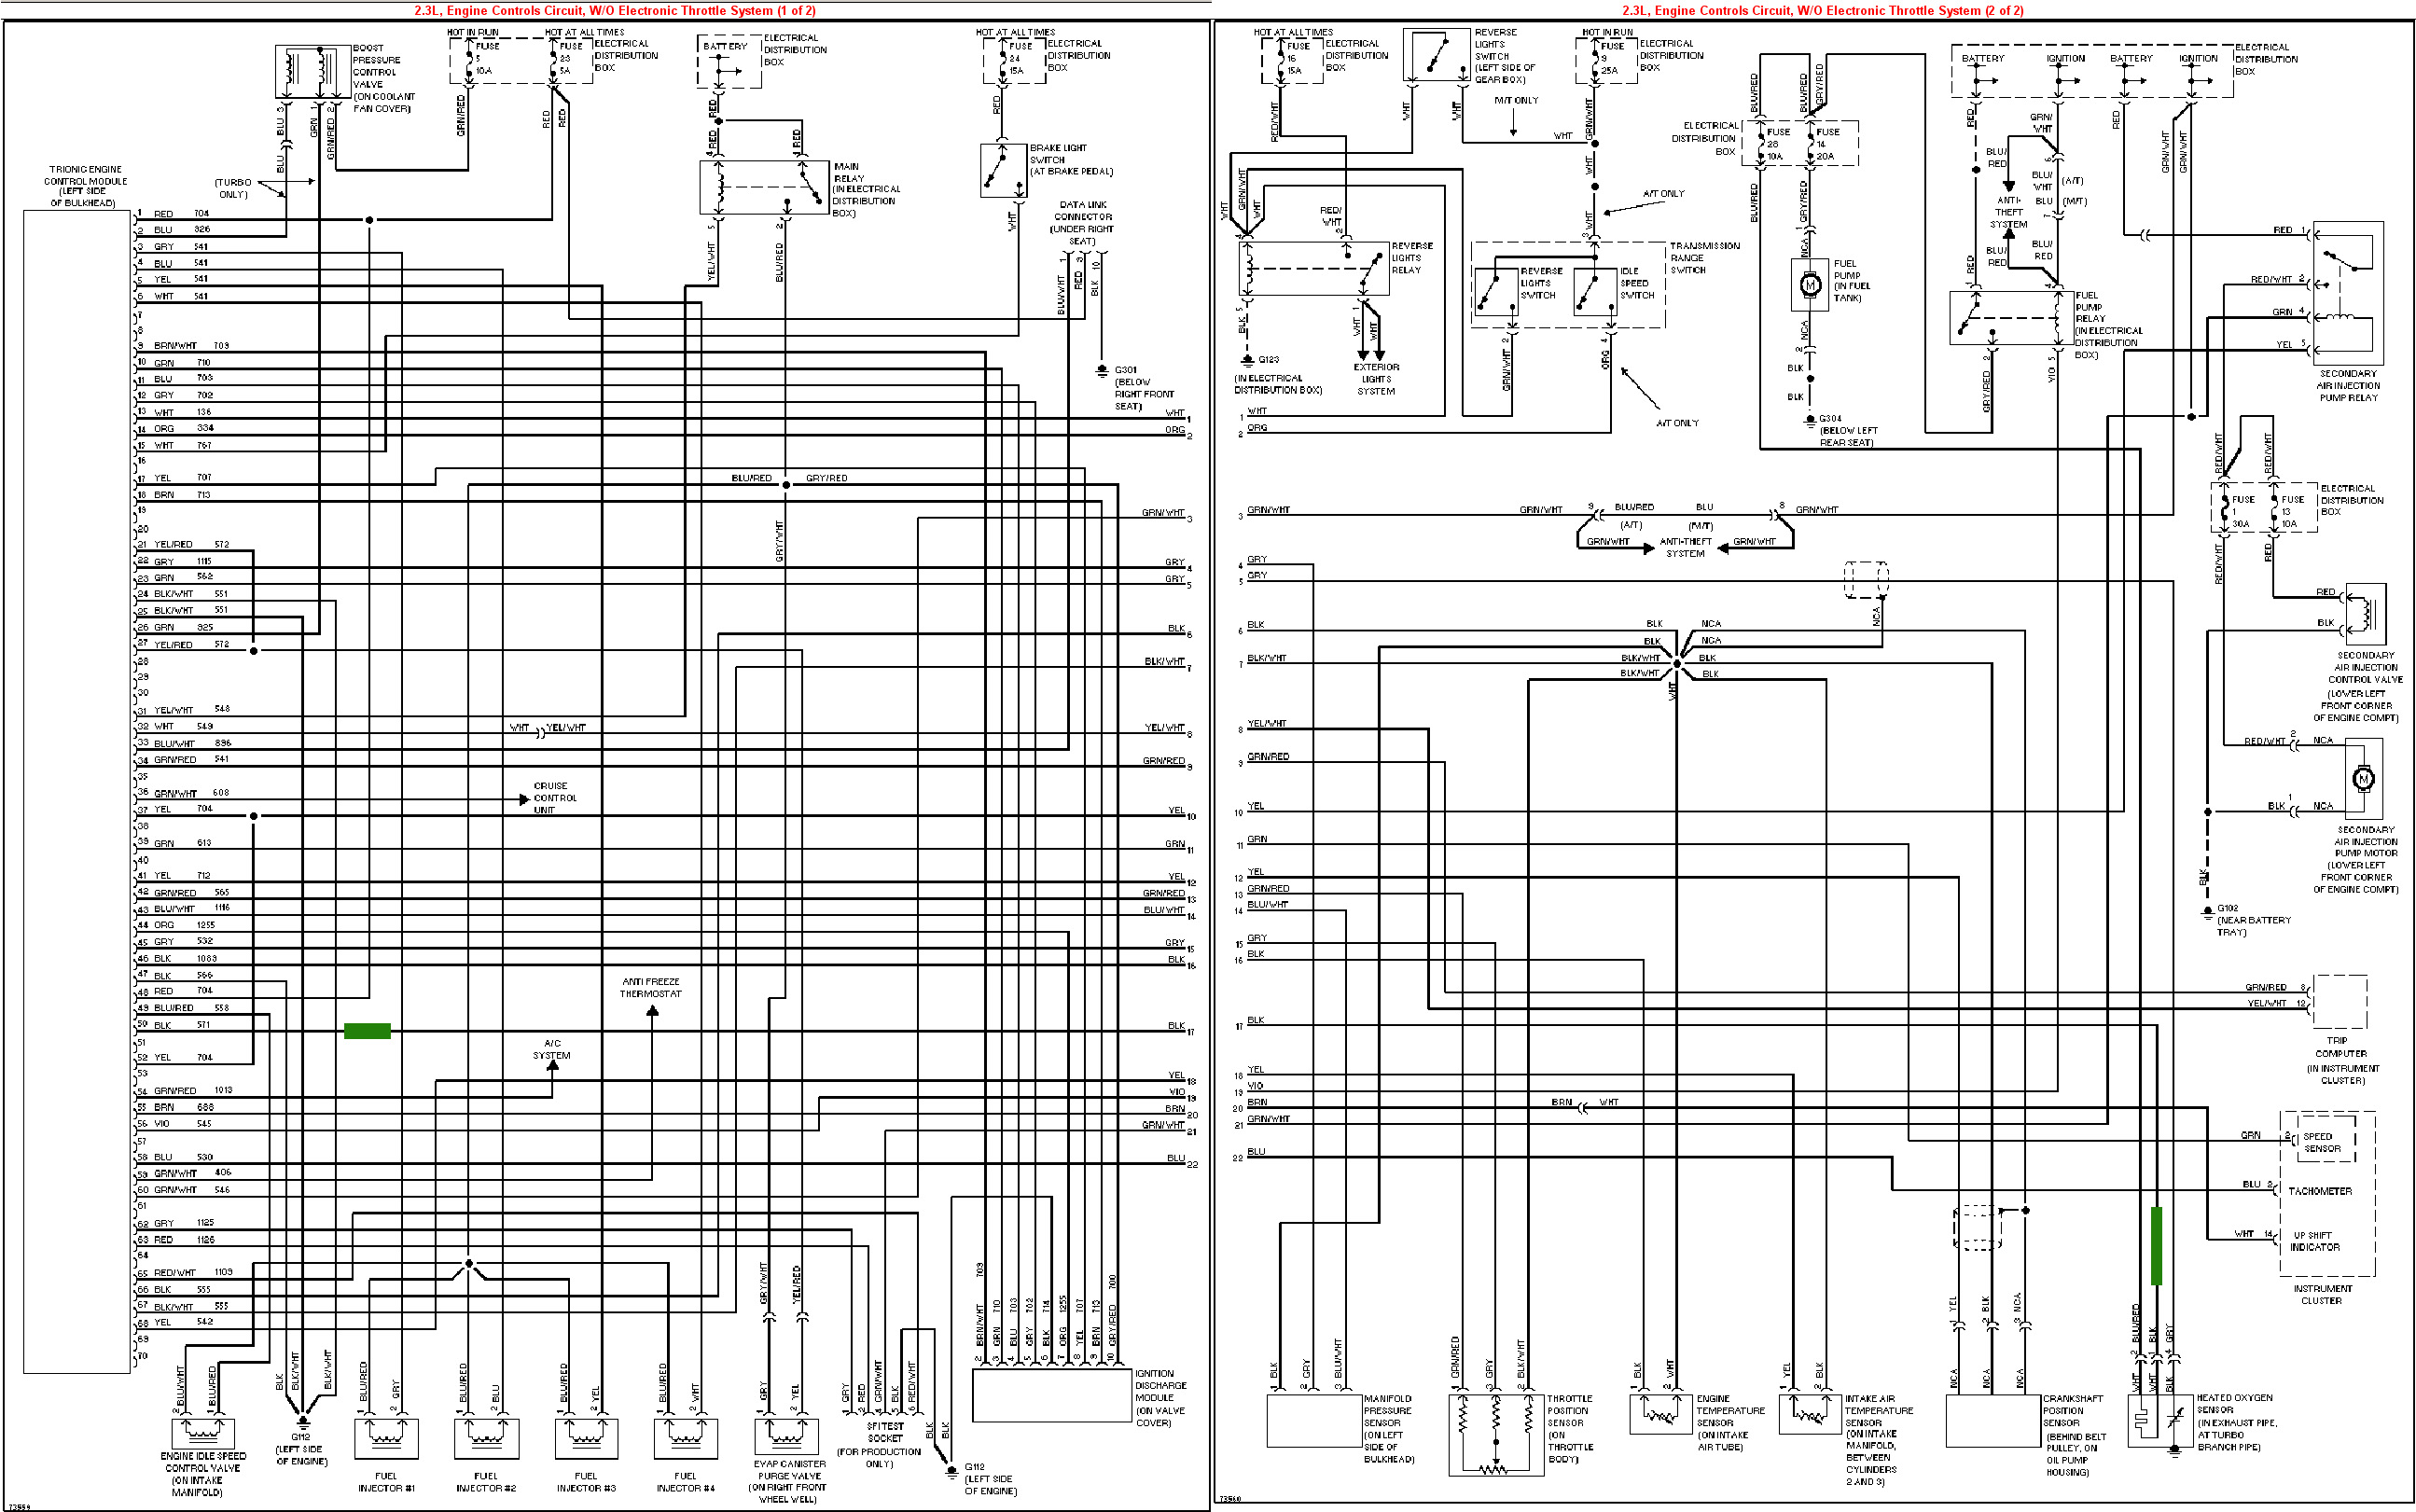 air fuel ratio lead 9000 ecu wiring diagram saab wiring diagrams instruction saab 9-5 wiring diagram pdf at creativeand.co